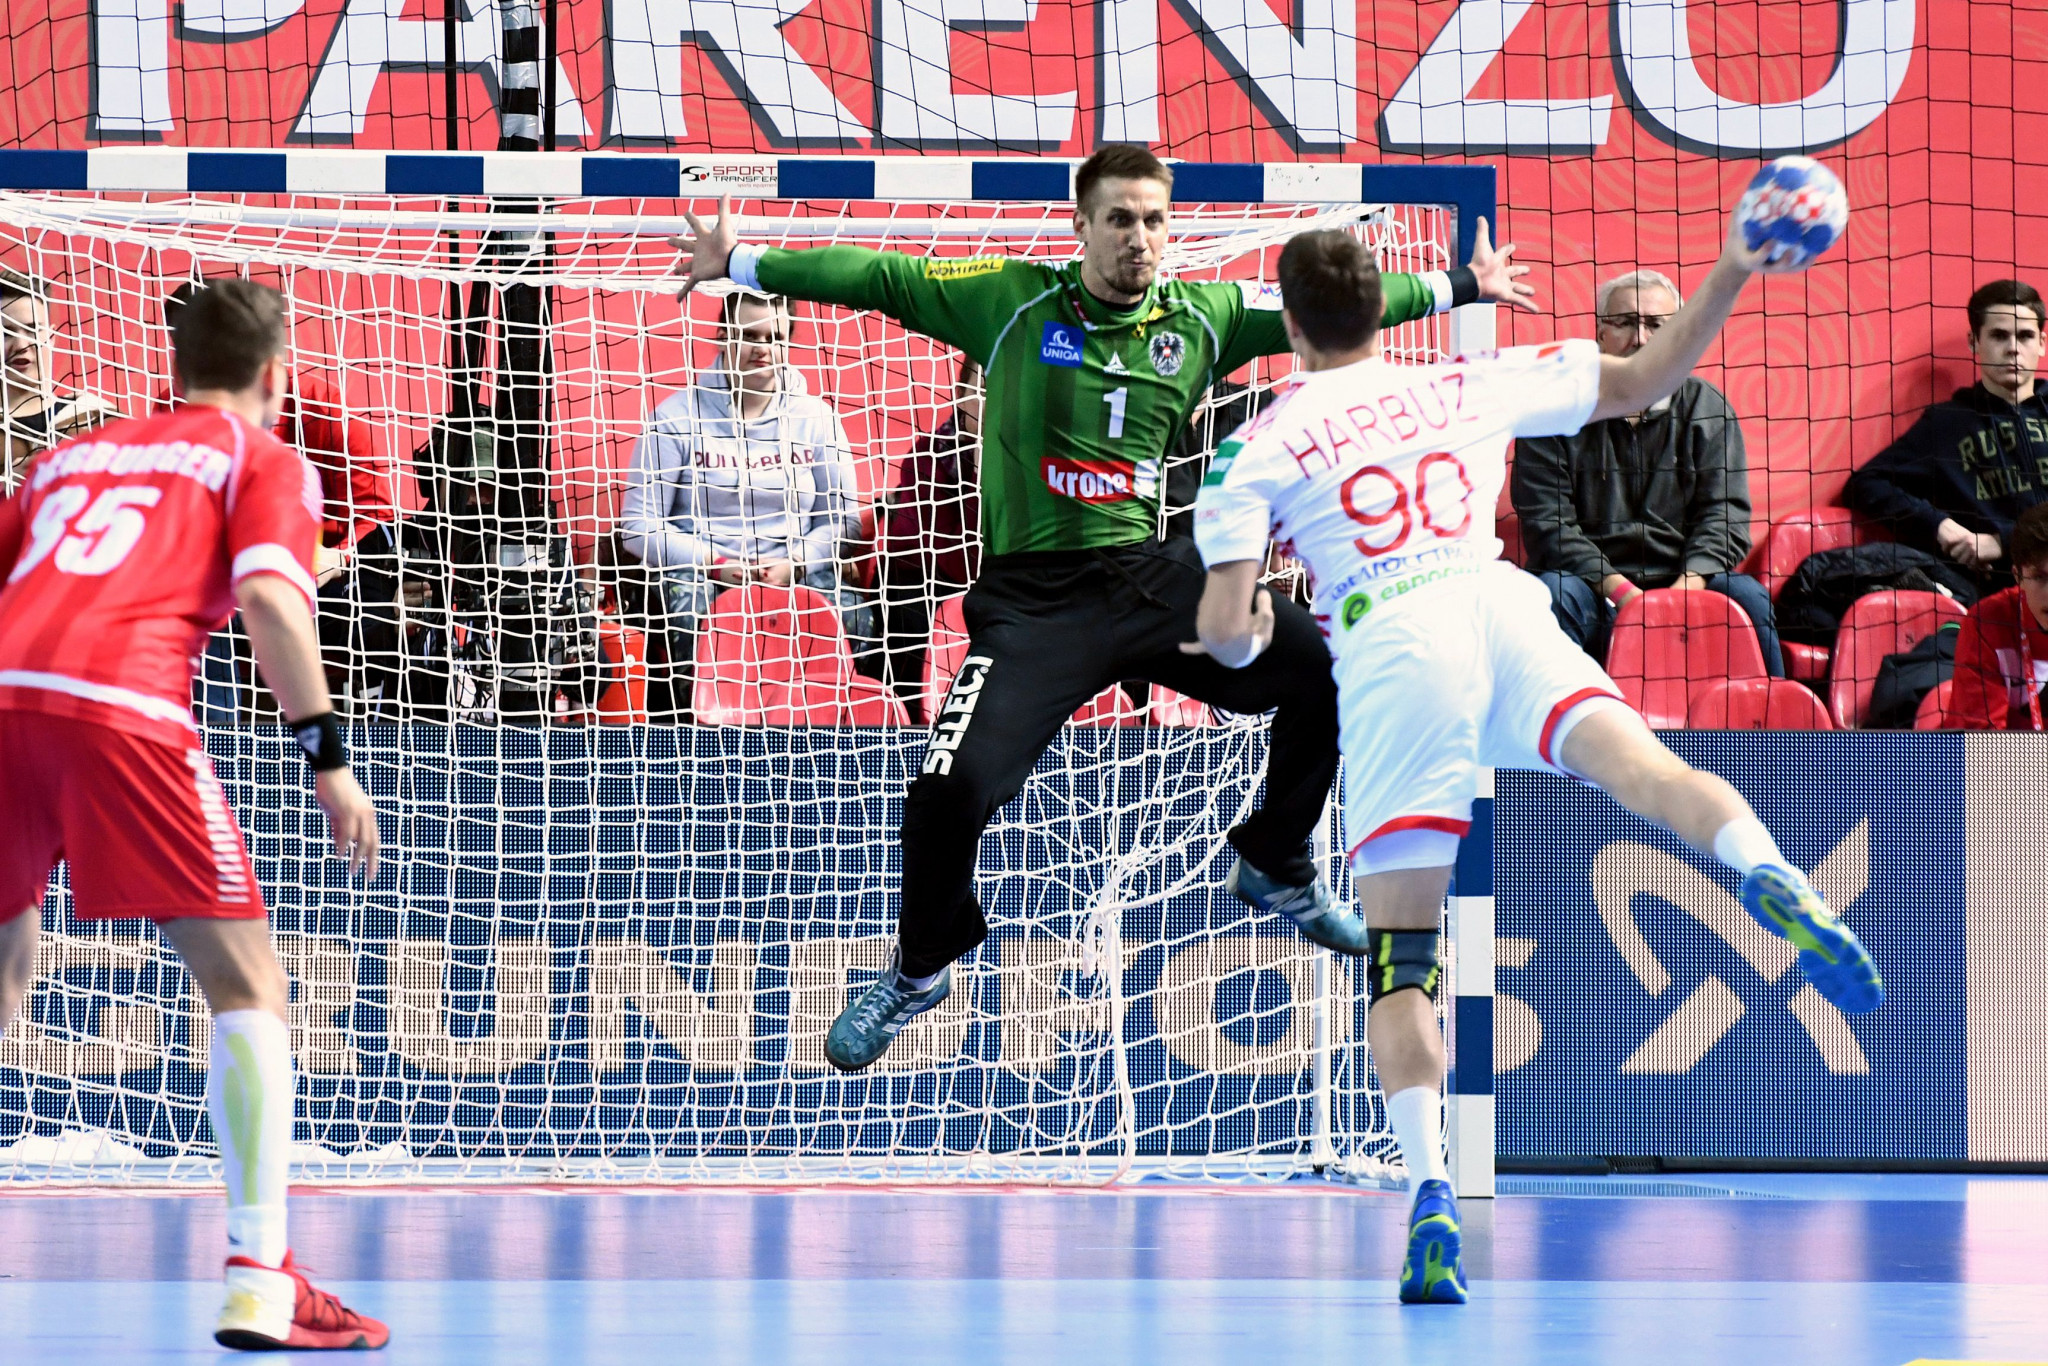 Iceland and Belarus come out on top on opening day of European Men's Handball Championships